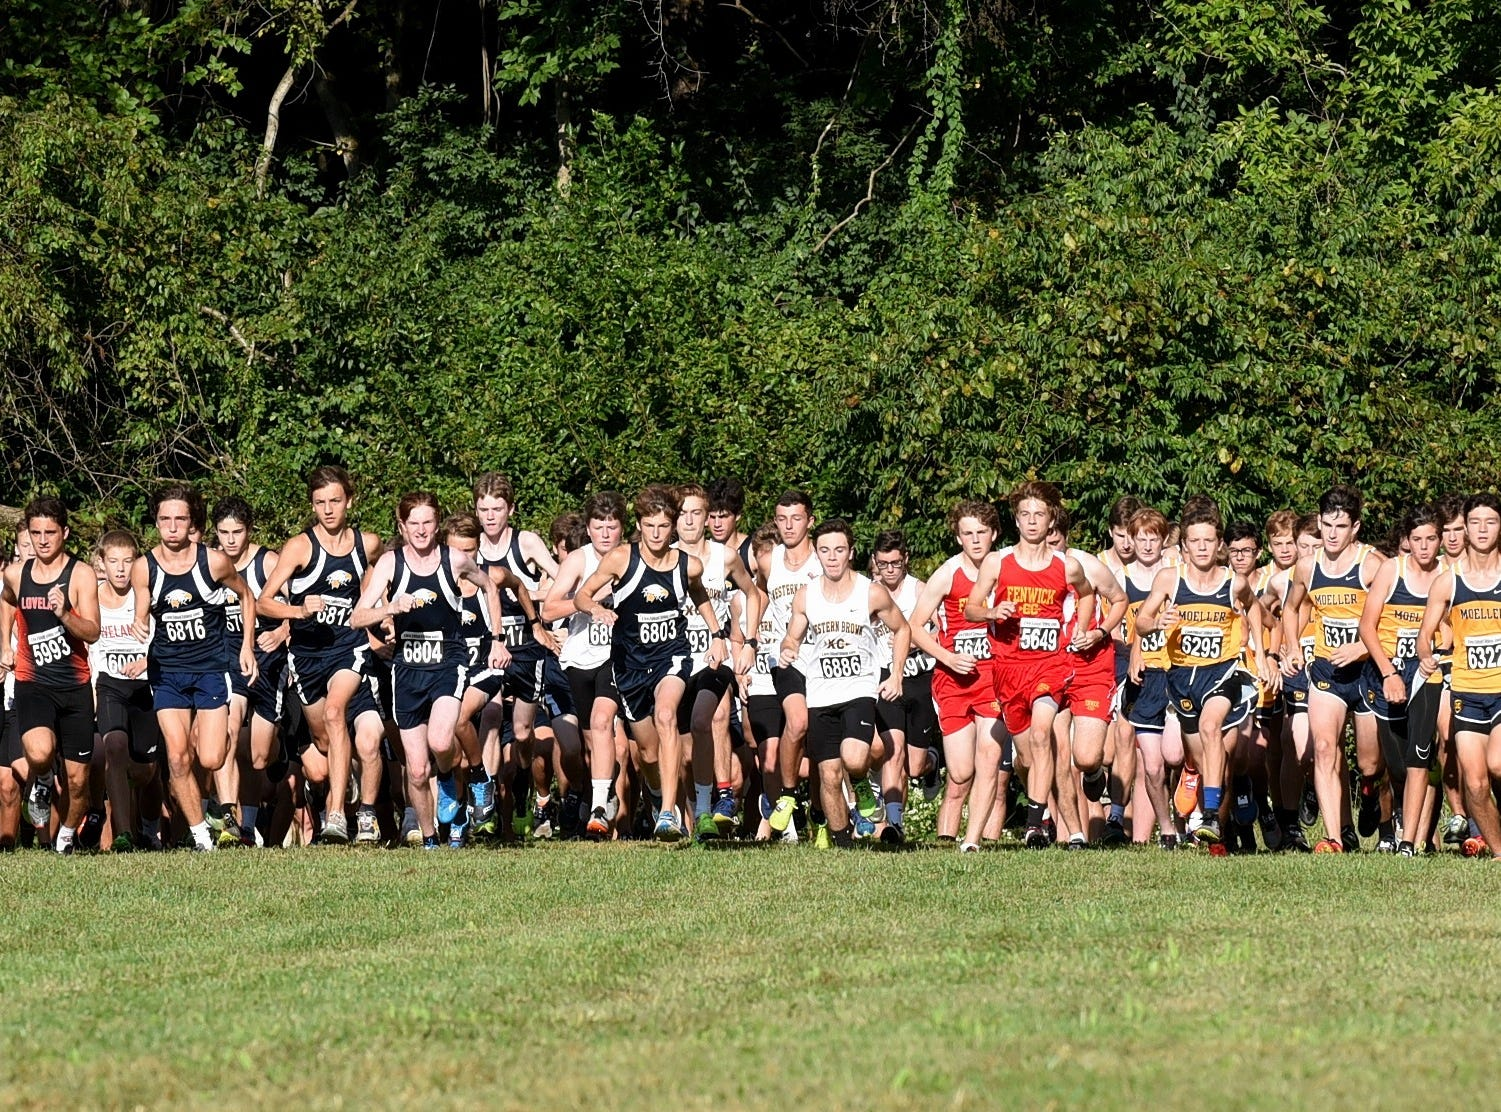 Guys in the Boys 5K Open race take the course at the 2018 Milford Cross Country Invitational, Sept. 15, 2018.